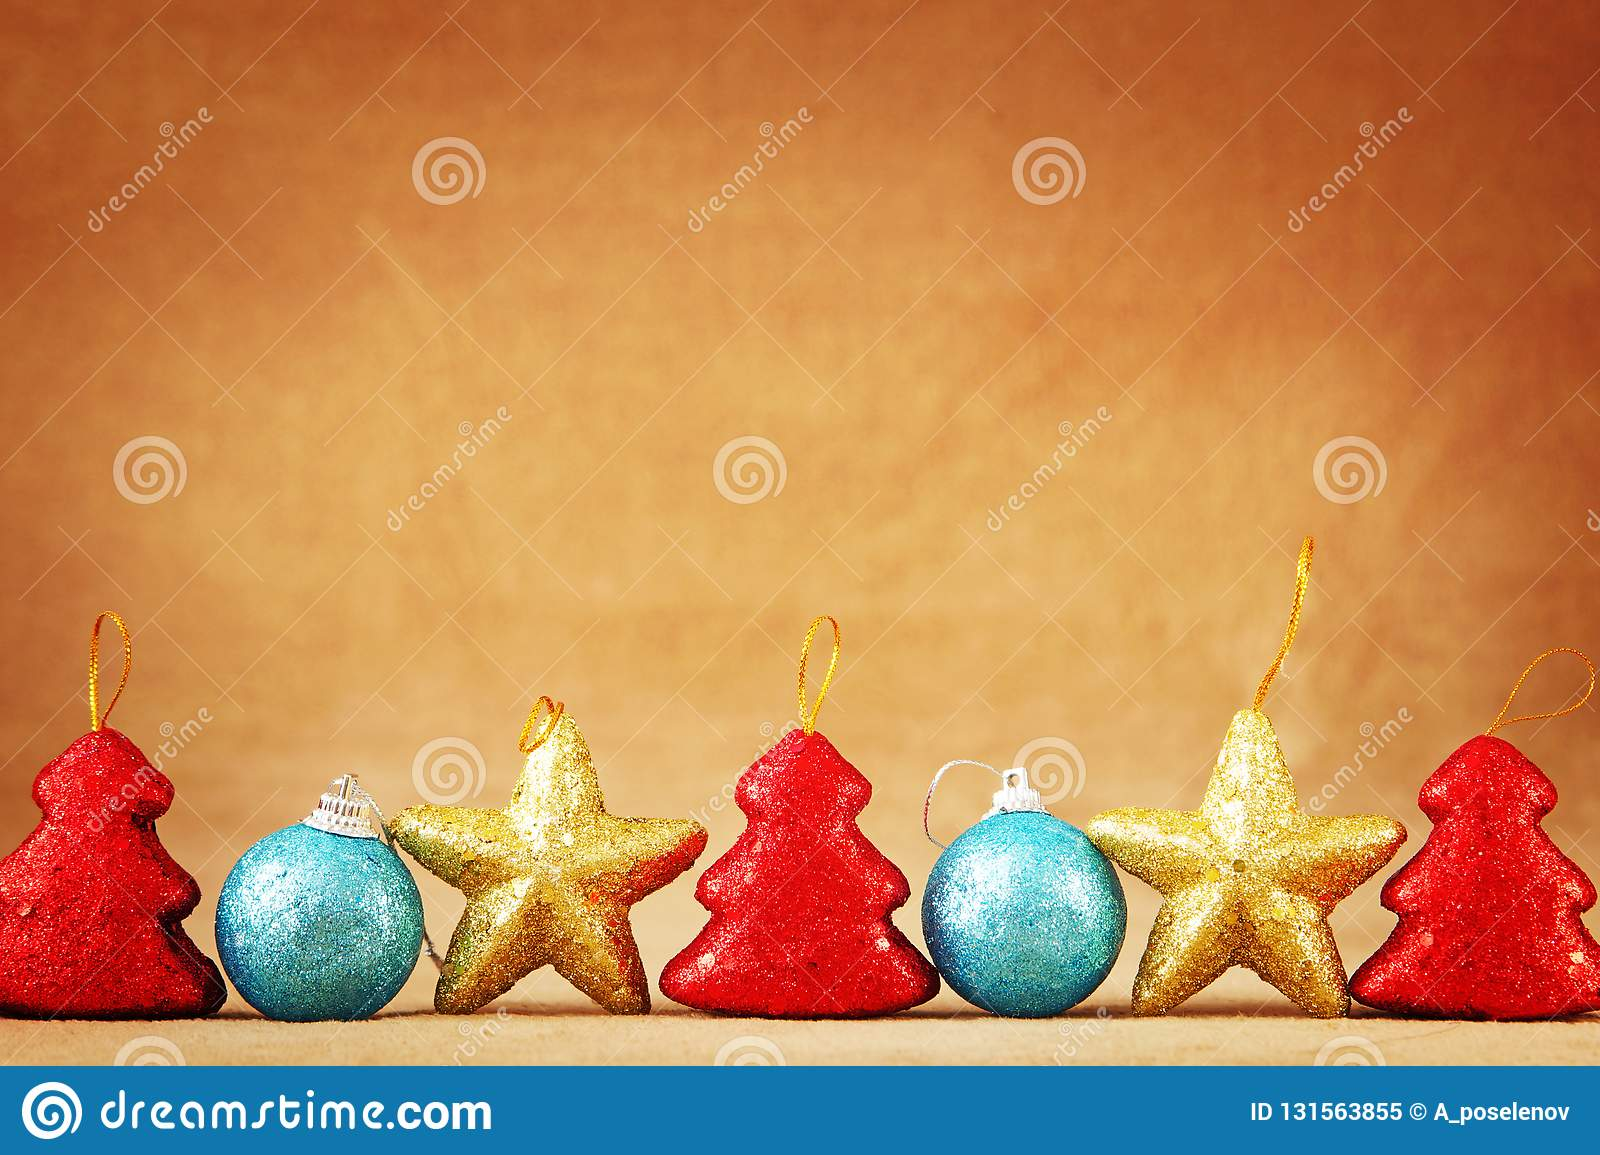 christmas or new year festive brown background with a bottom border made of christmas toys